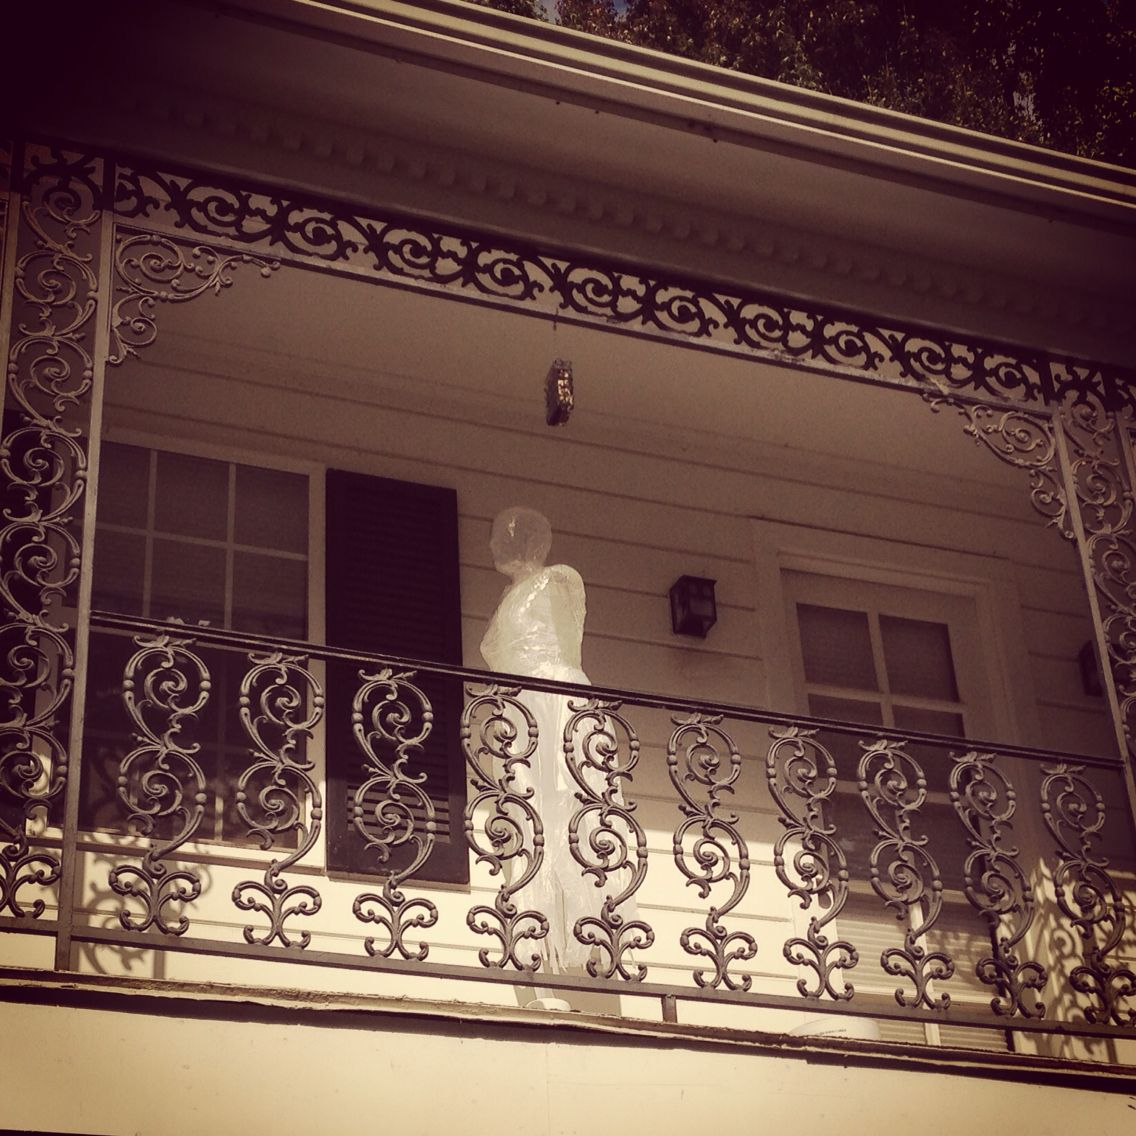 Super Simple Ideas For People Who Hate Yard Work: Packing Tape Ghost Hanging From The Balcony. Halloween